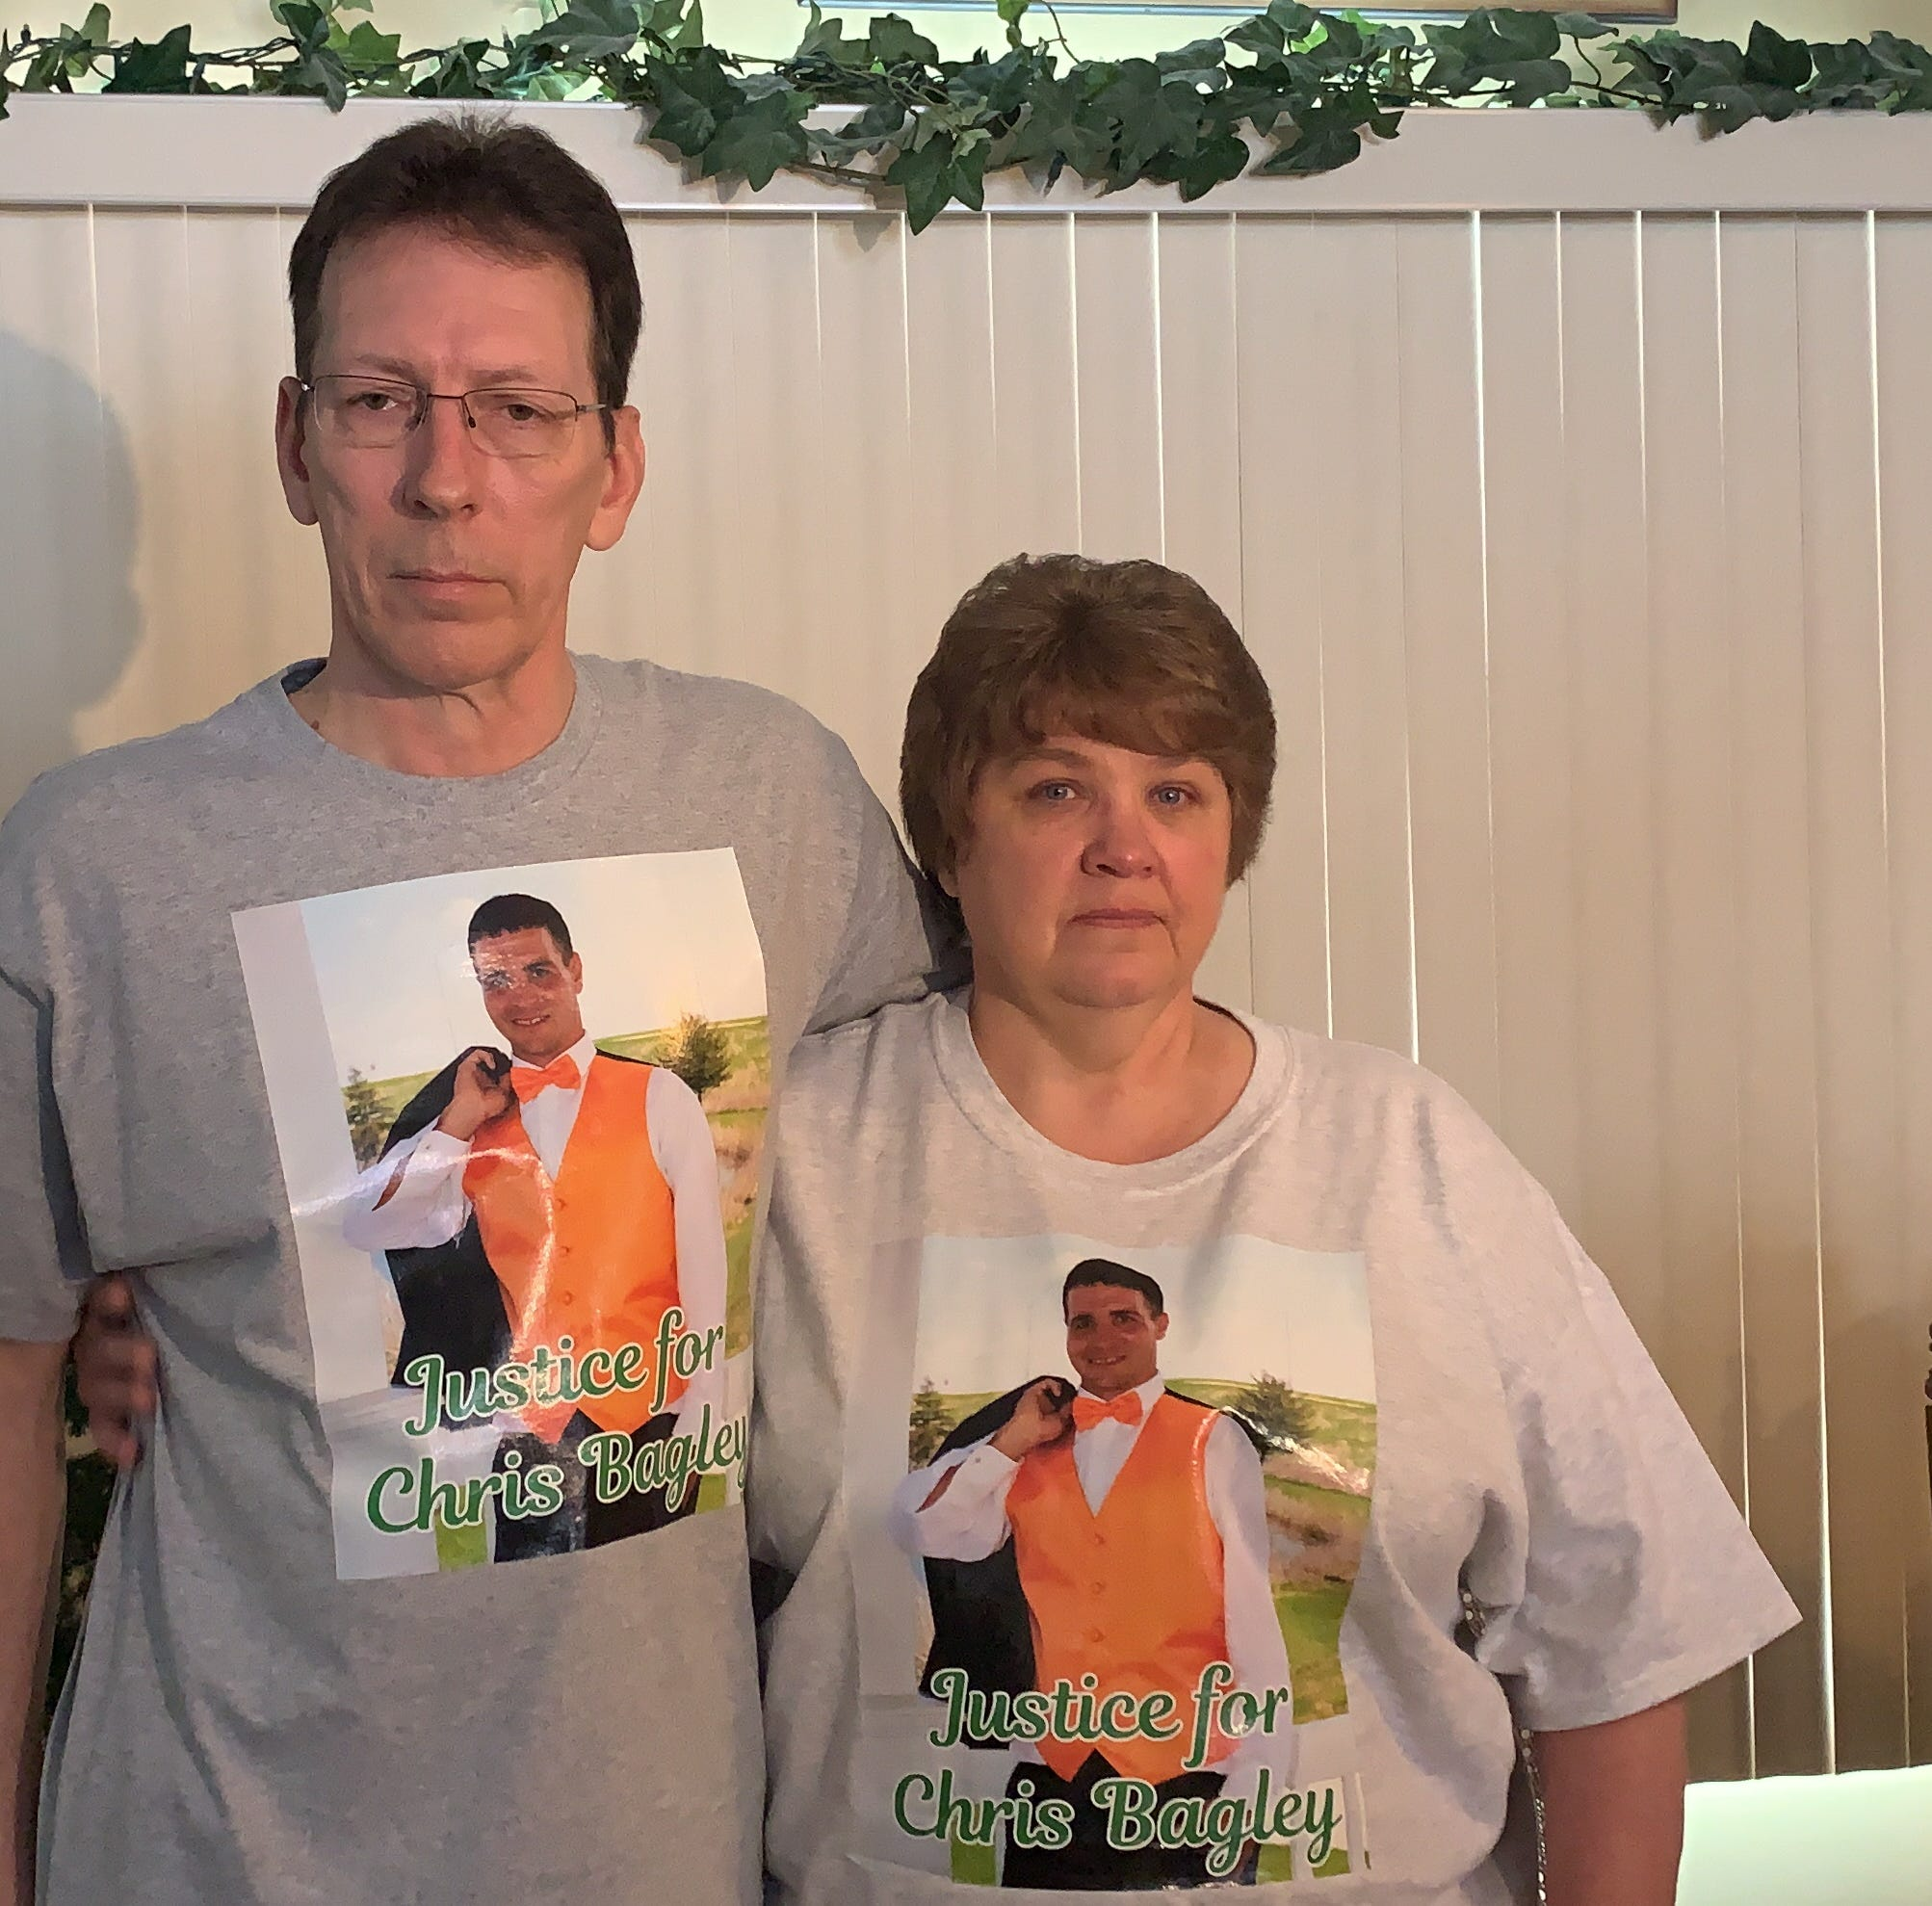 'You took our lives, too': Iowa parents remember flawed but family-oriented son who was stabbed to death